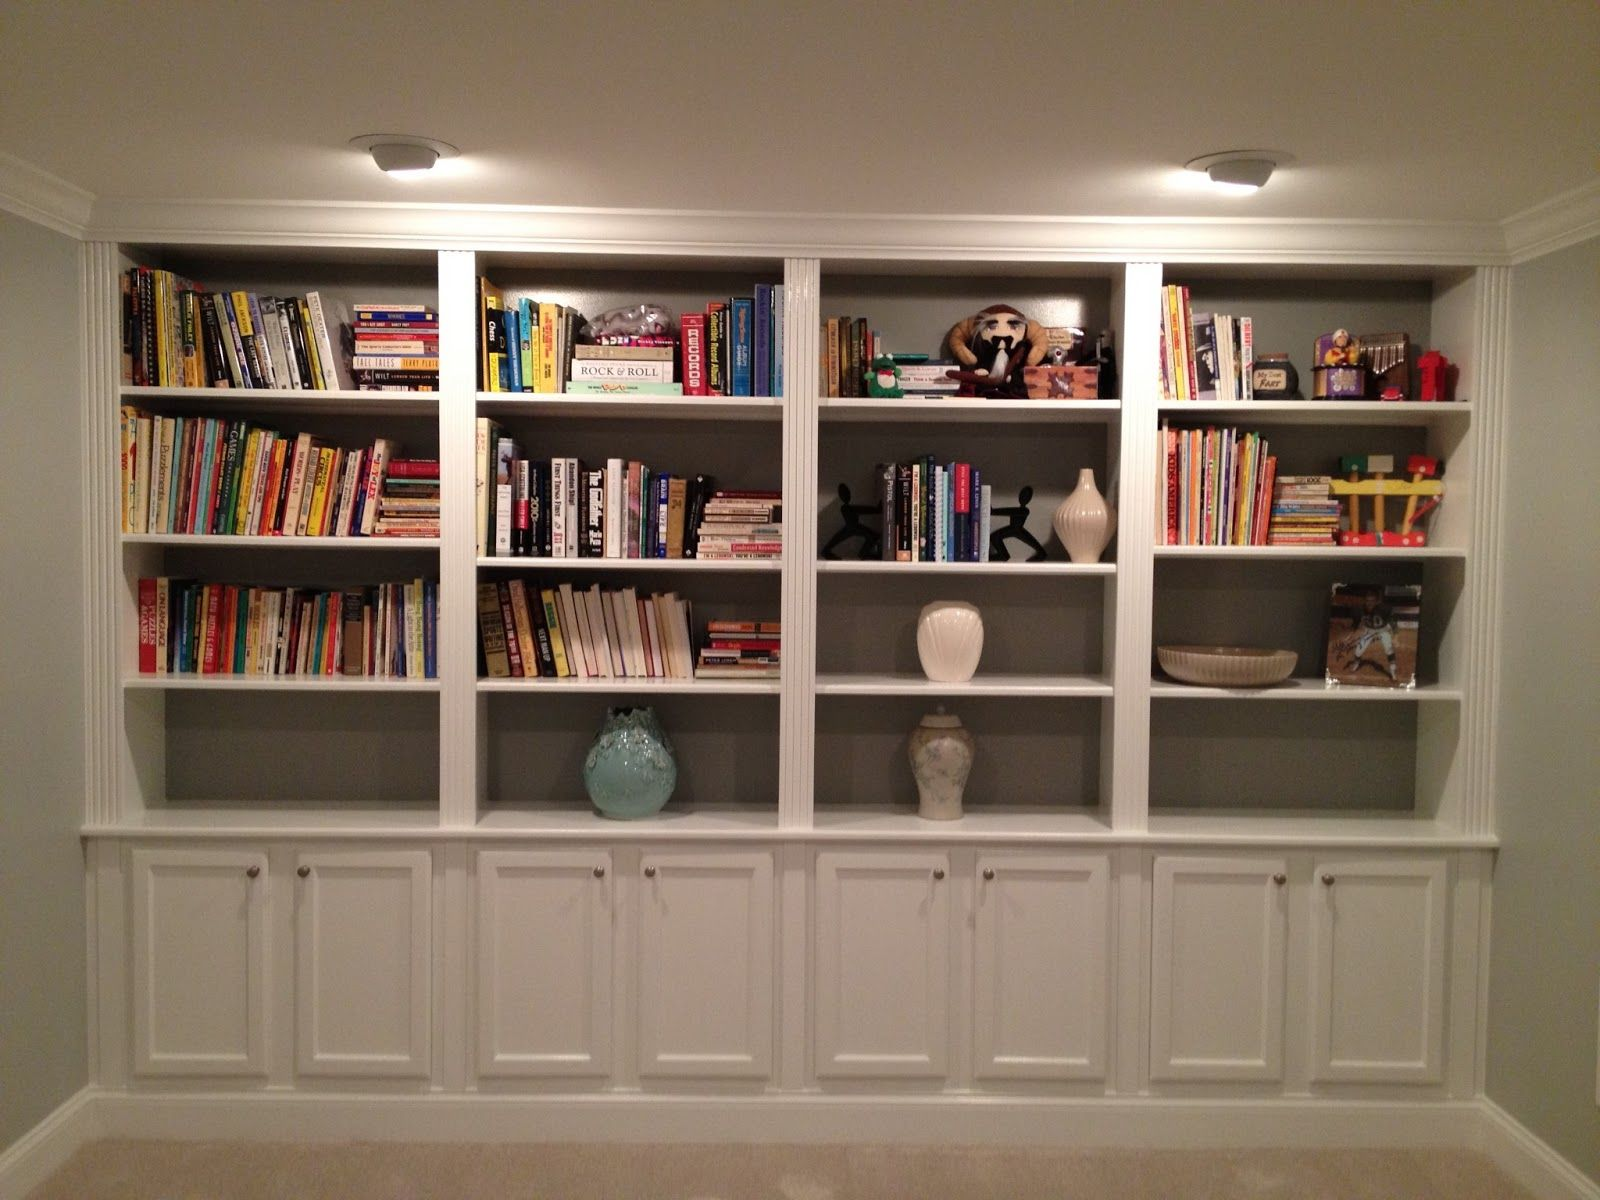 Floor To Ceiling Shelving - Google Search